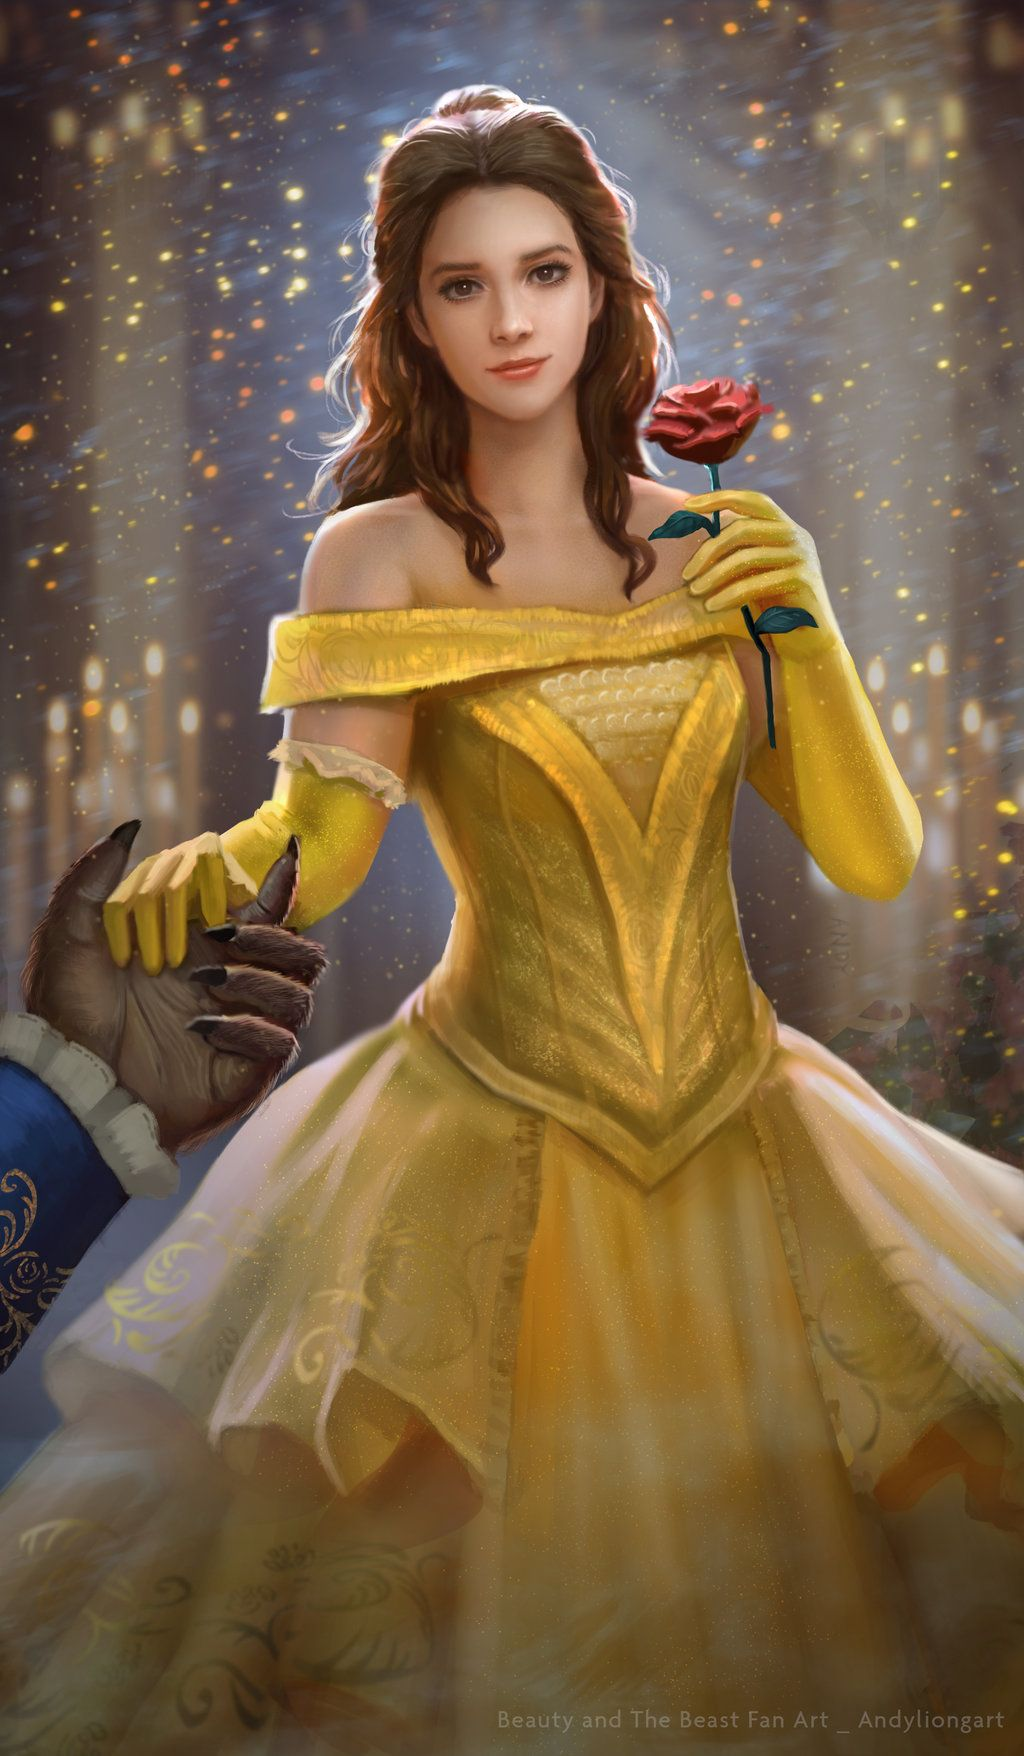 I Always Love Disney Character And Am Very Exited For The Live Action Of Beauty Beast Try To Mix Classic Animation Belle Look With